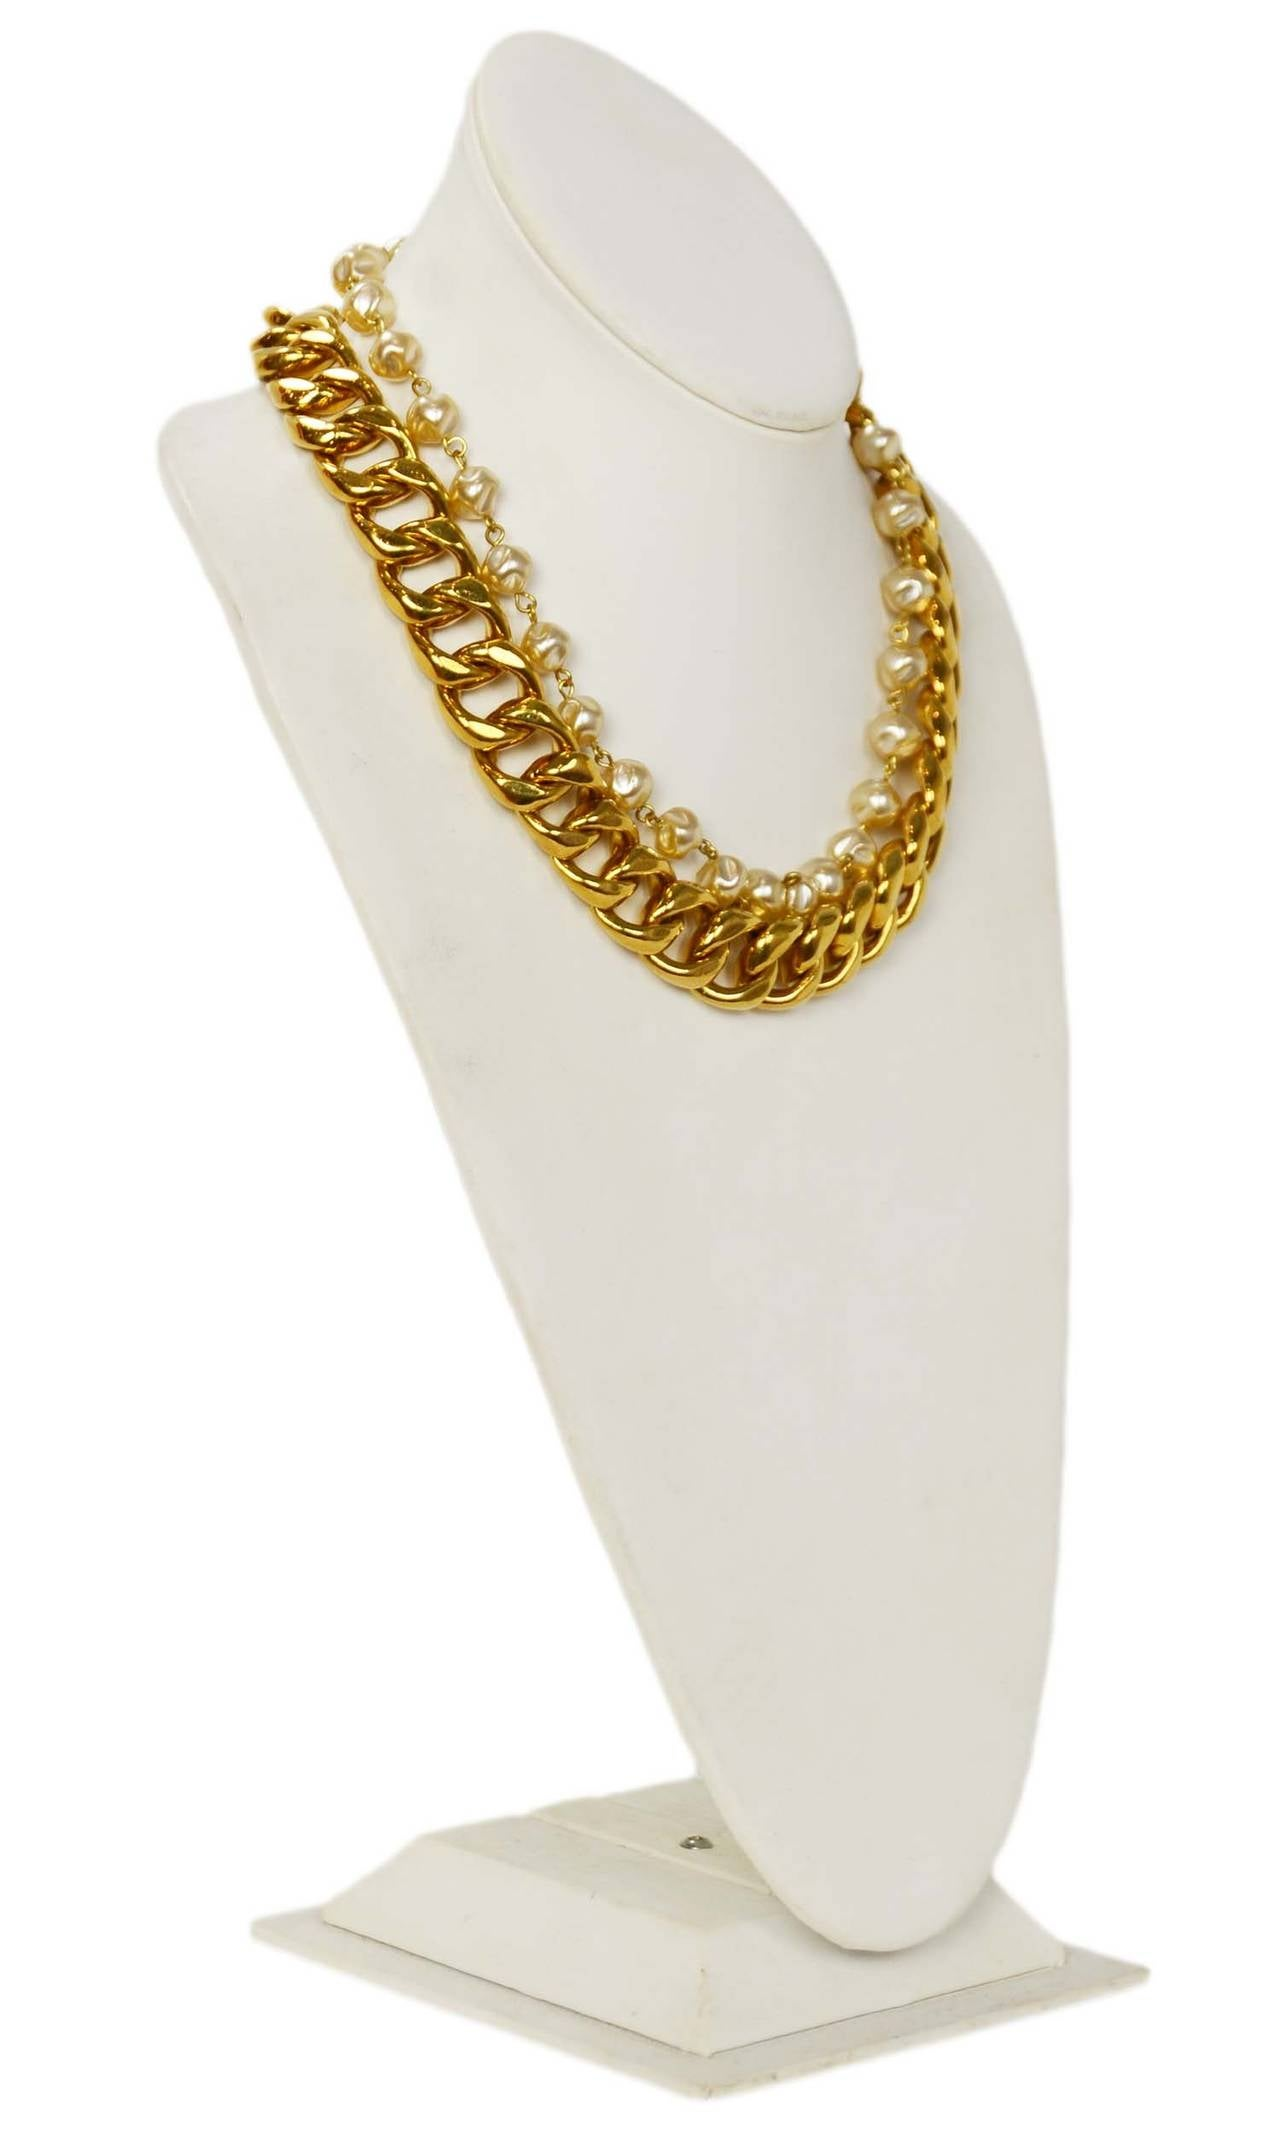 Chanel Vintage Goldtone Chain Link & Small Pearl Choker Necklace 3